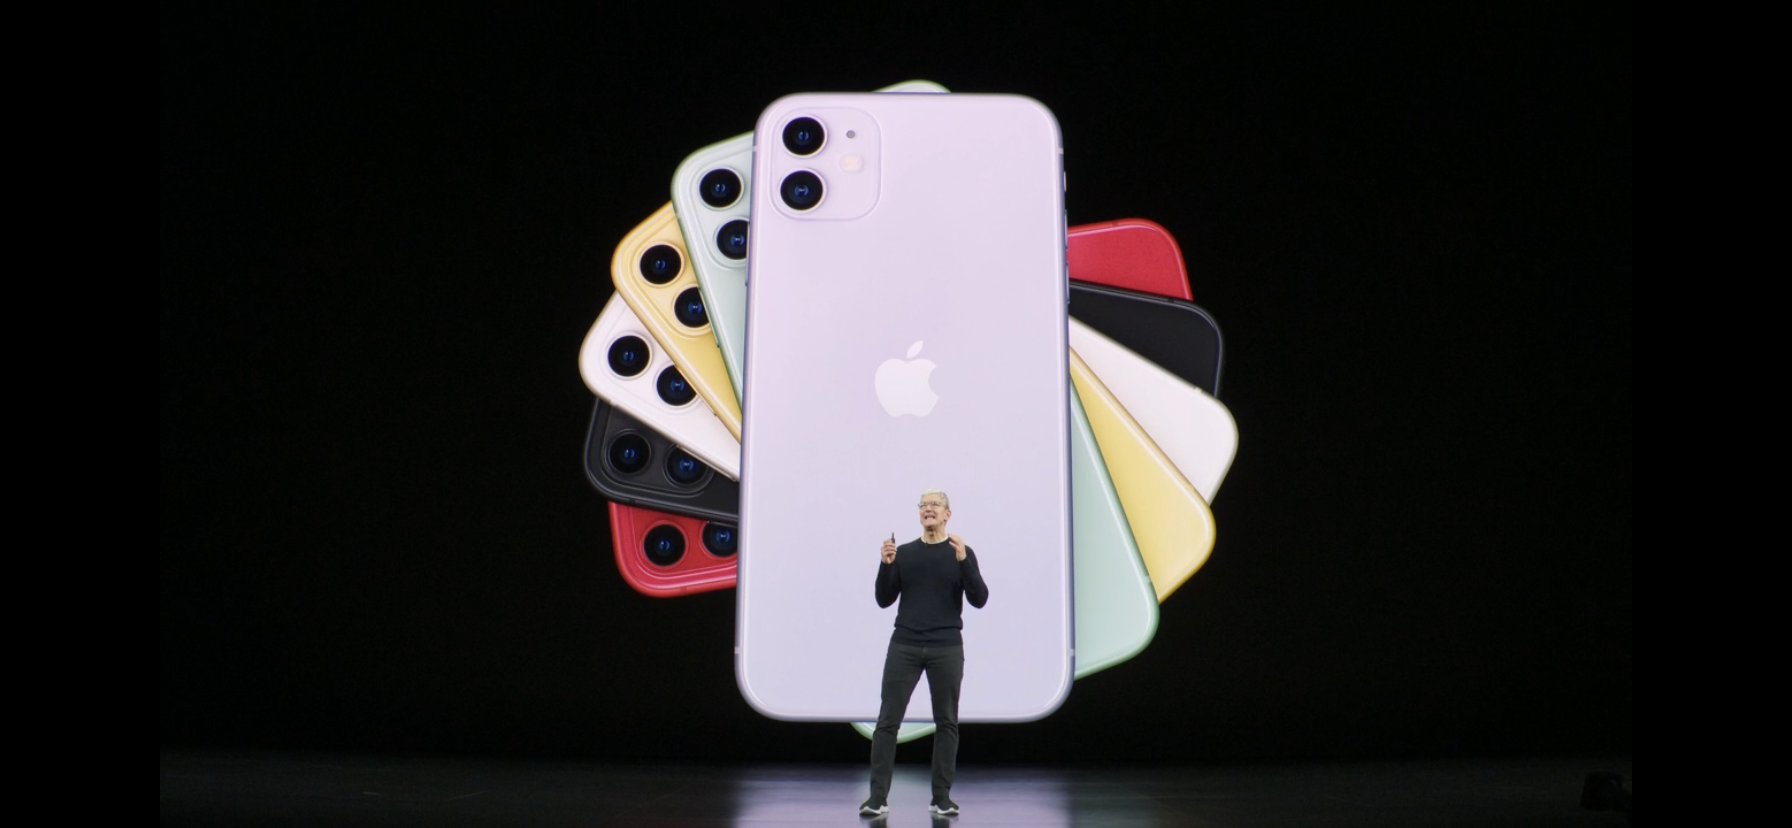 Apple event 2019 iPhone 11